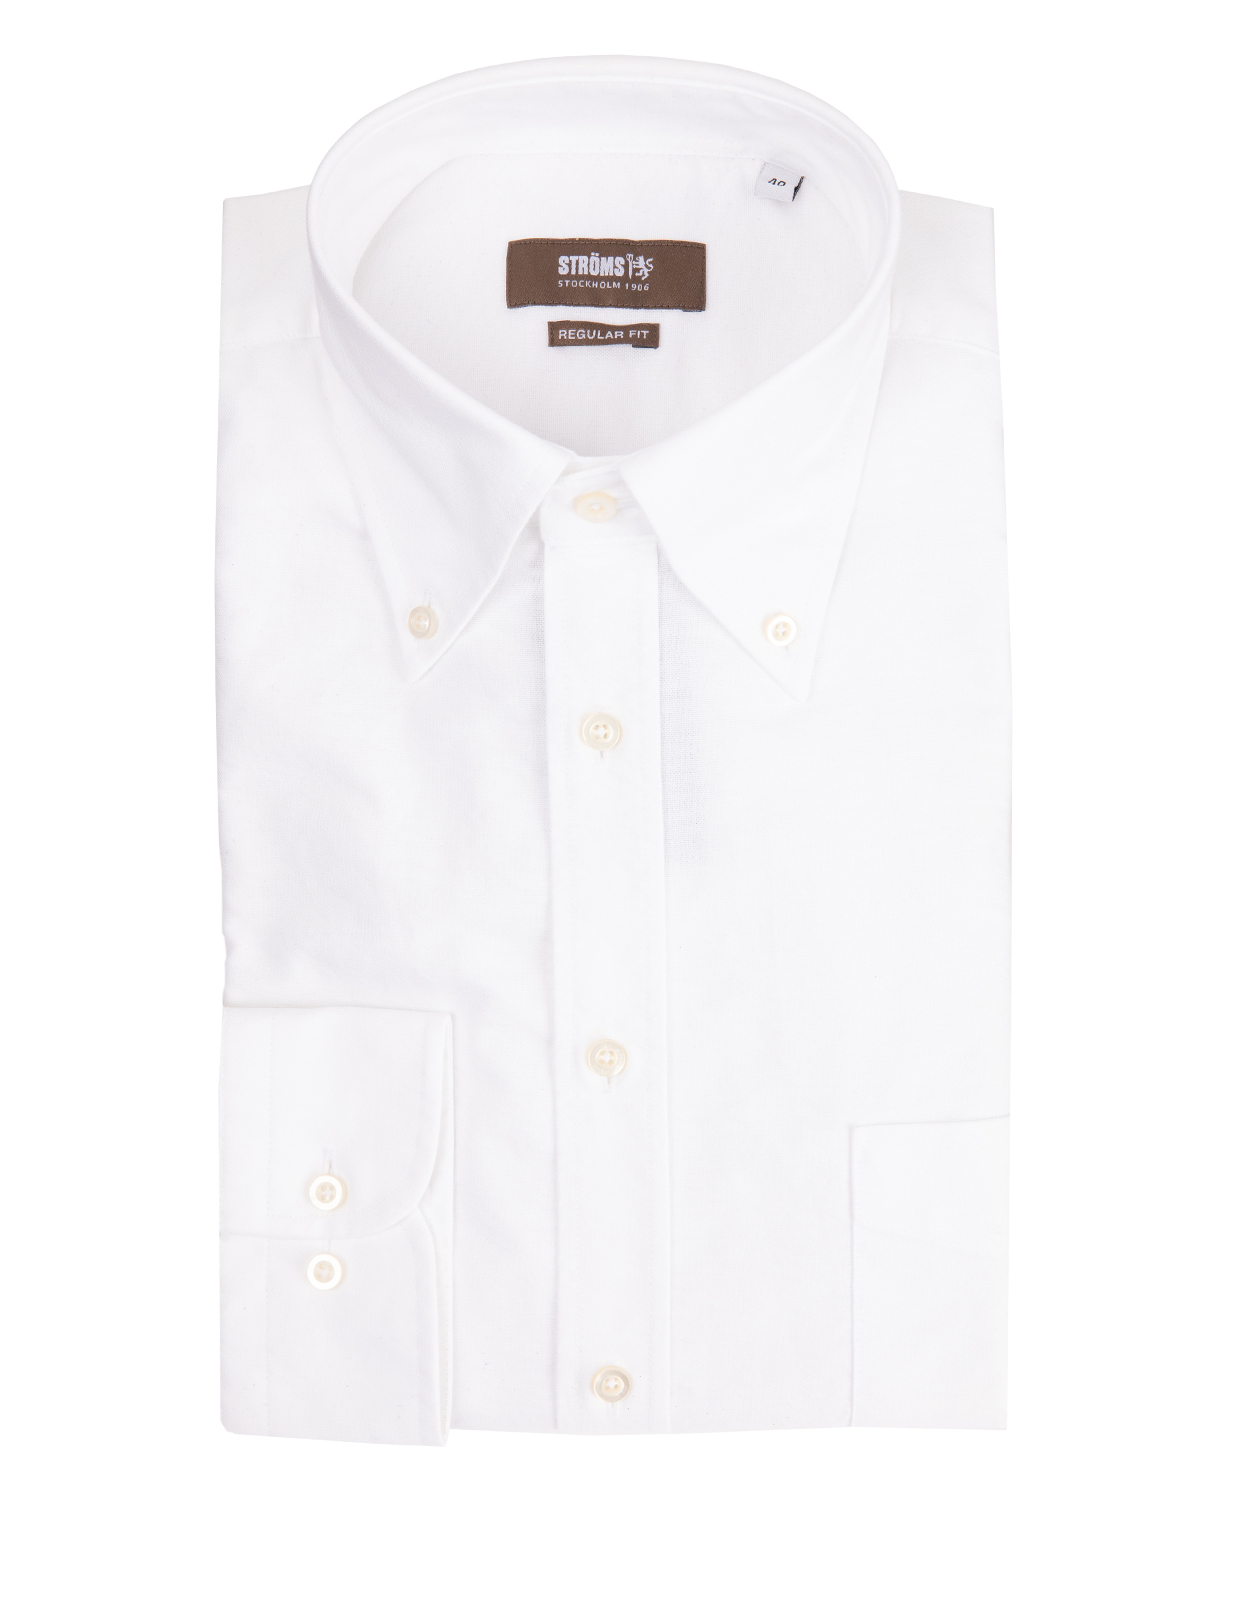 Regular Fit Button Down Oxfordskjorta OxfordVit